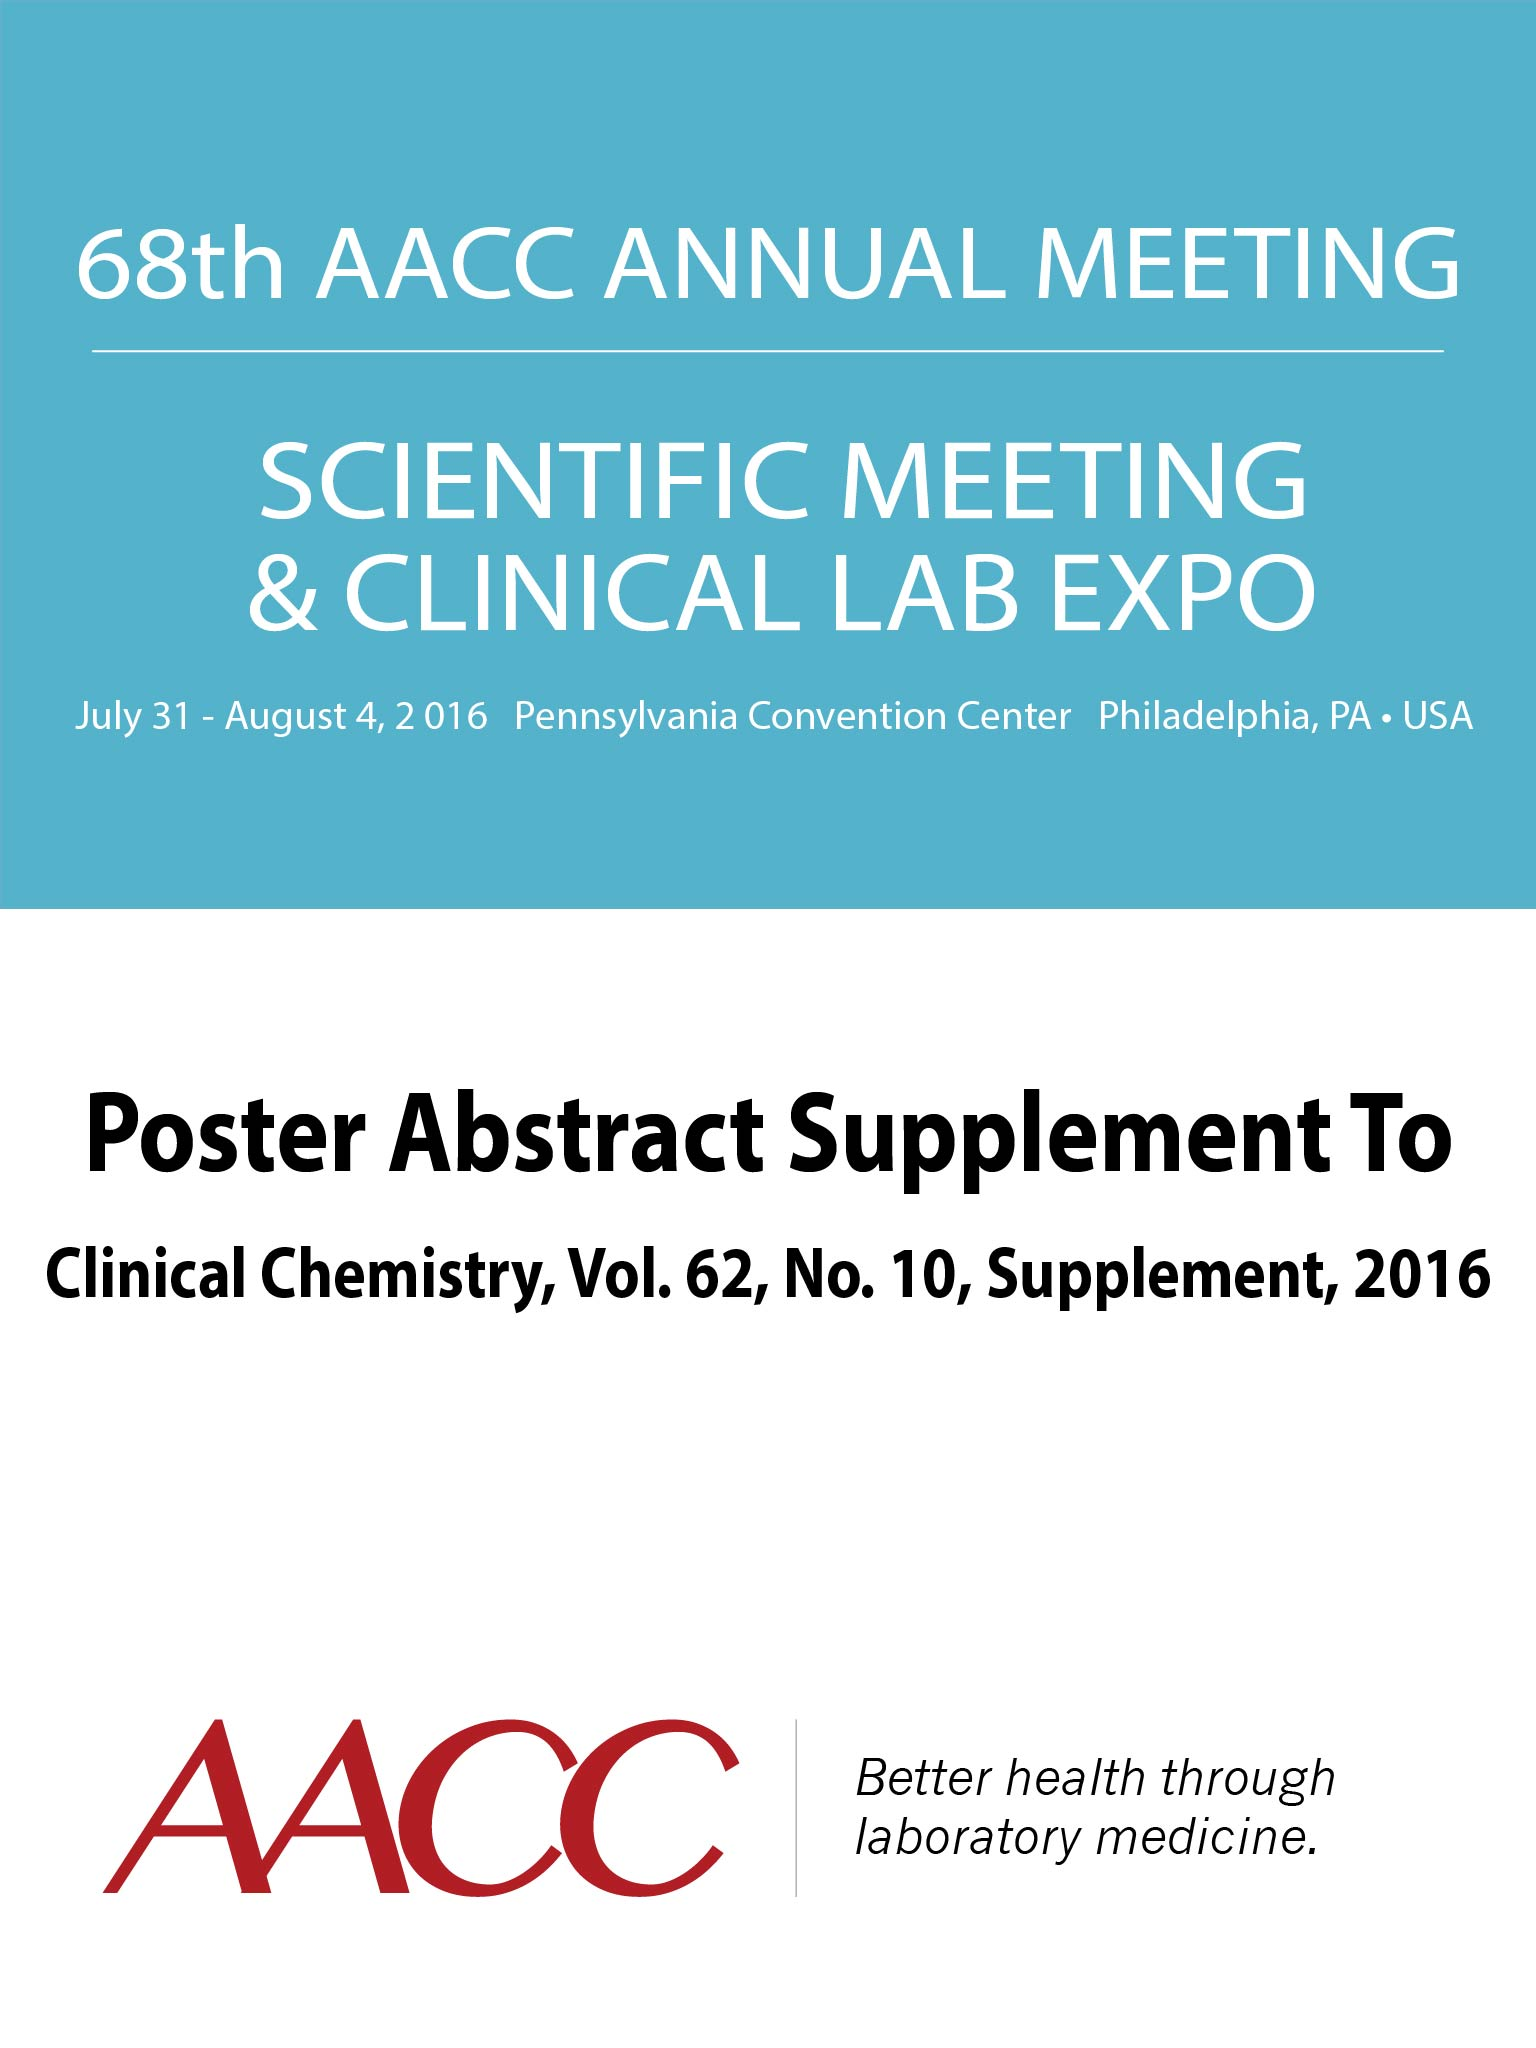 Smashwords 68th aacc annual scientific meeting abstract ebook a 68th aacc annual scientific meeting abstract ebook by american association for clinical chemistry fandeluxe Gallery